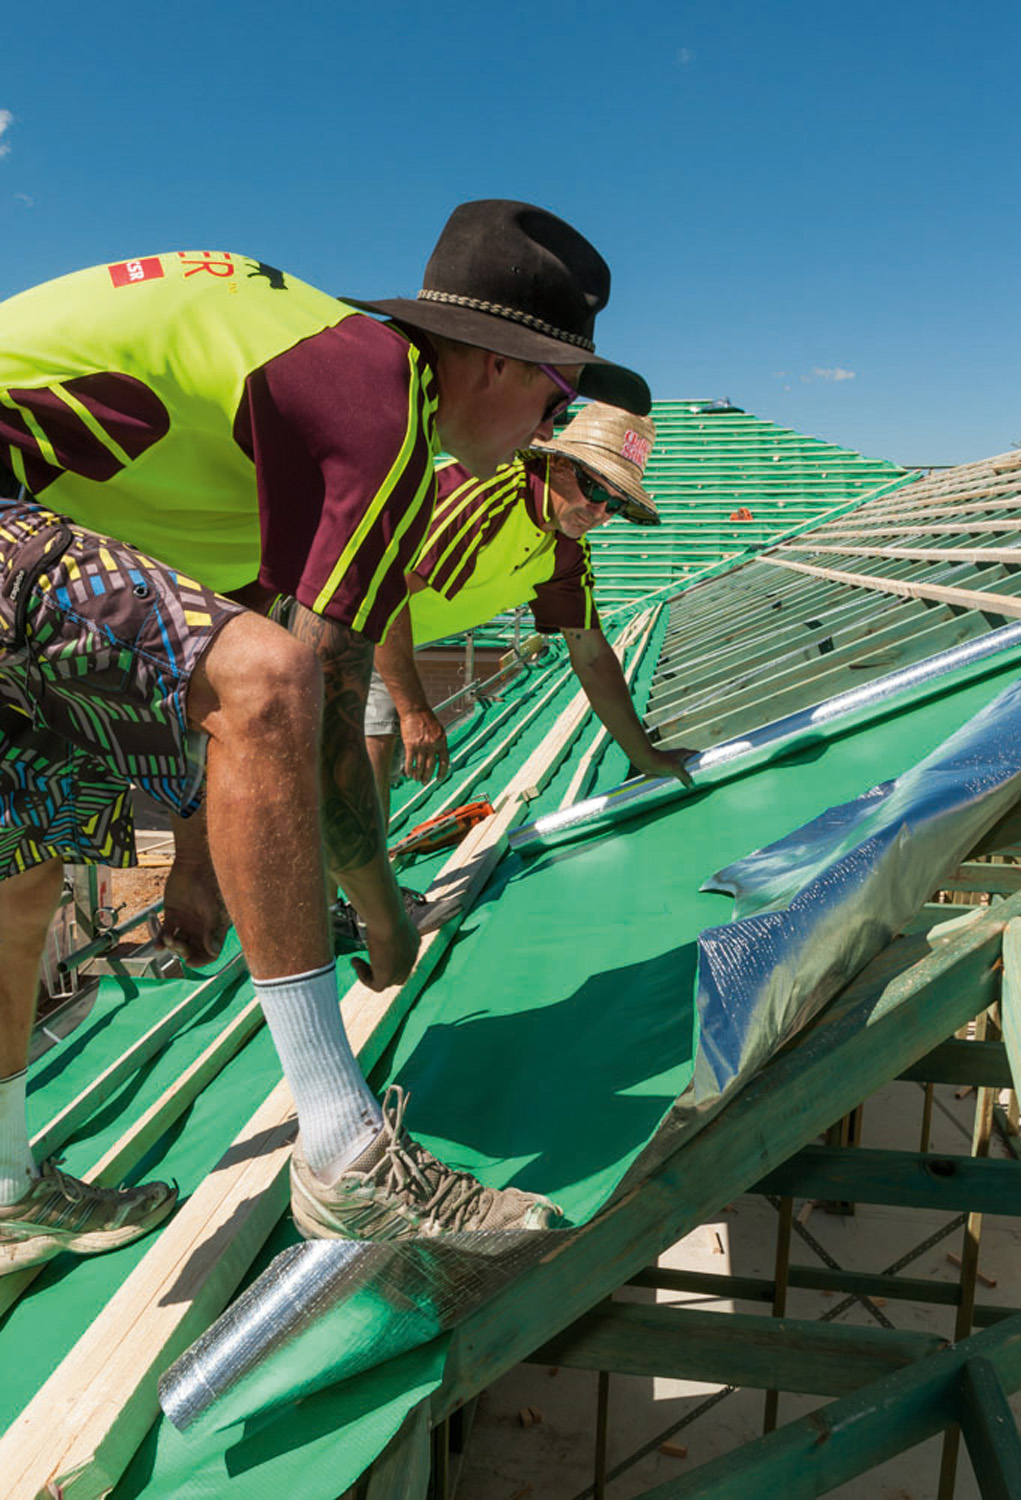 9 must-know tips for reroofing: ready for roofing